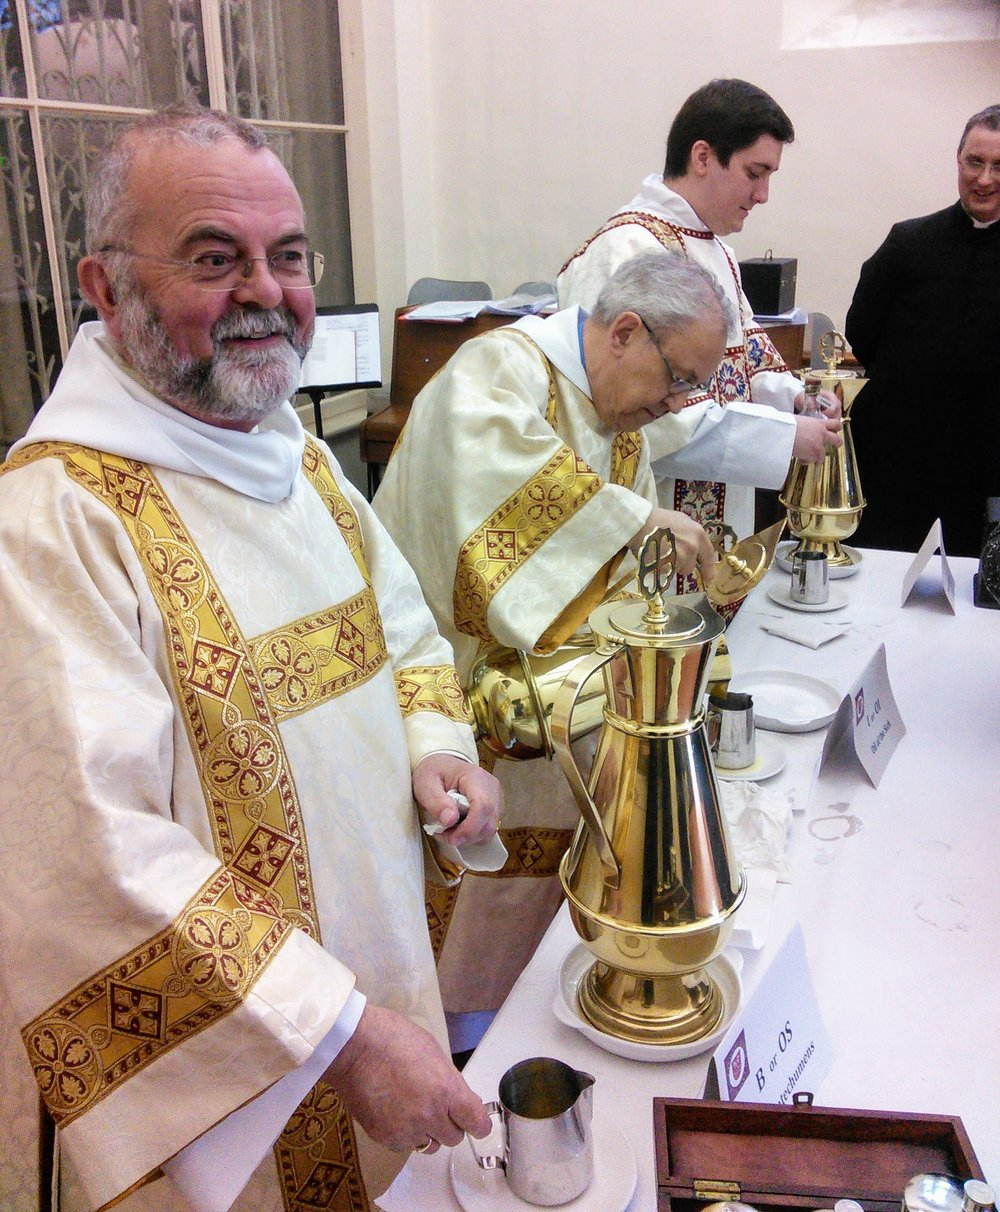 After Mass, the oils which have been blessed, are distributed to all the priests of the Diocese, to be used through the year for the celebration of the sacraments, Christ's presence amongst us.